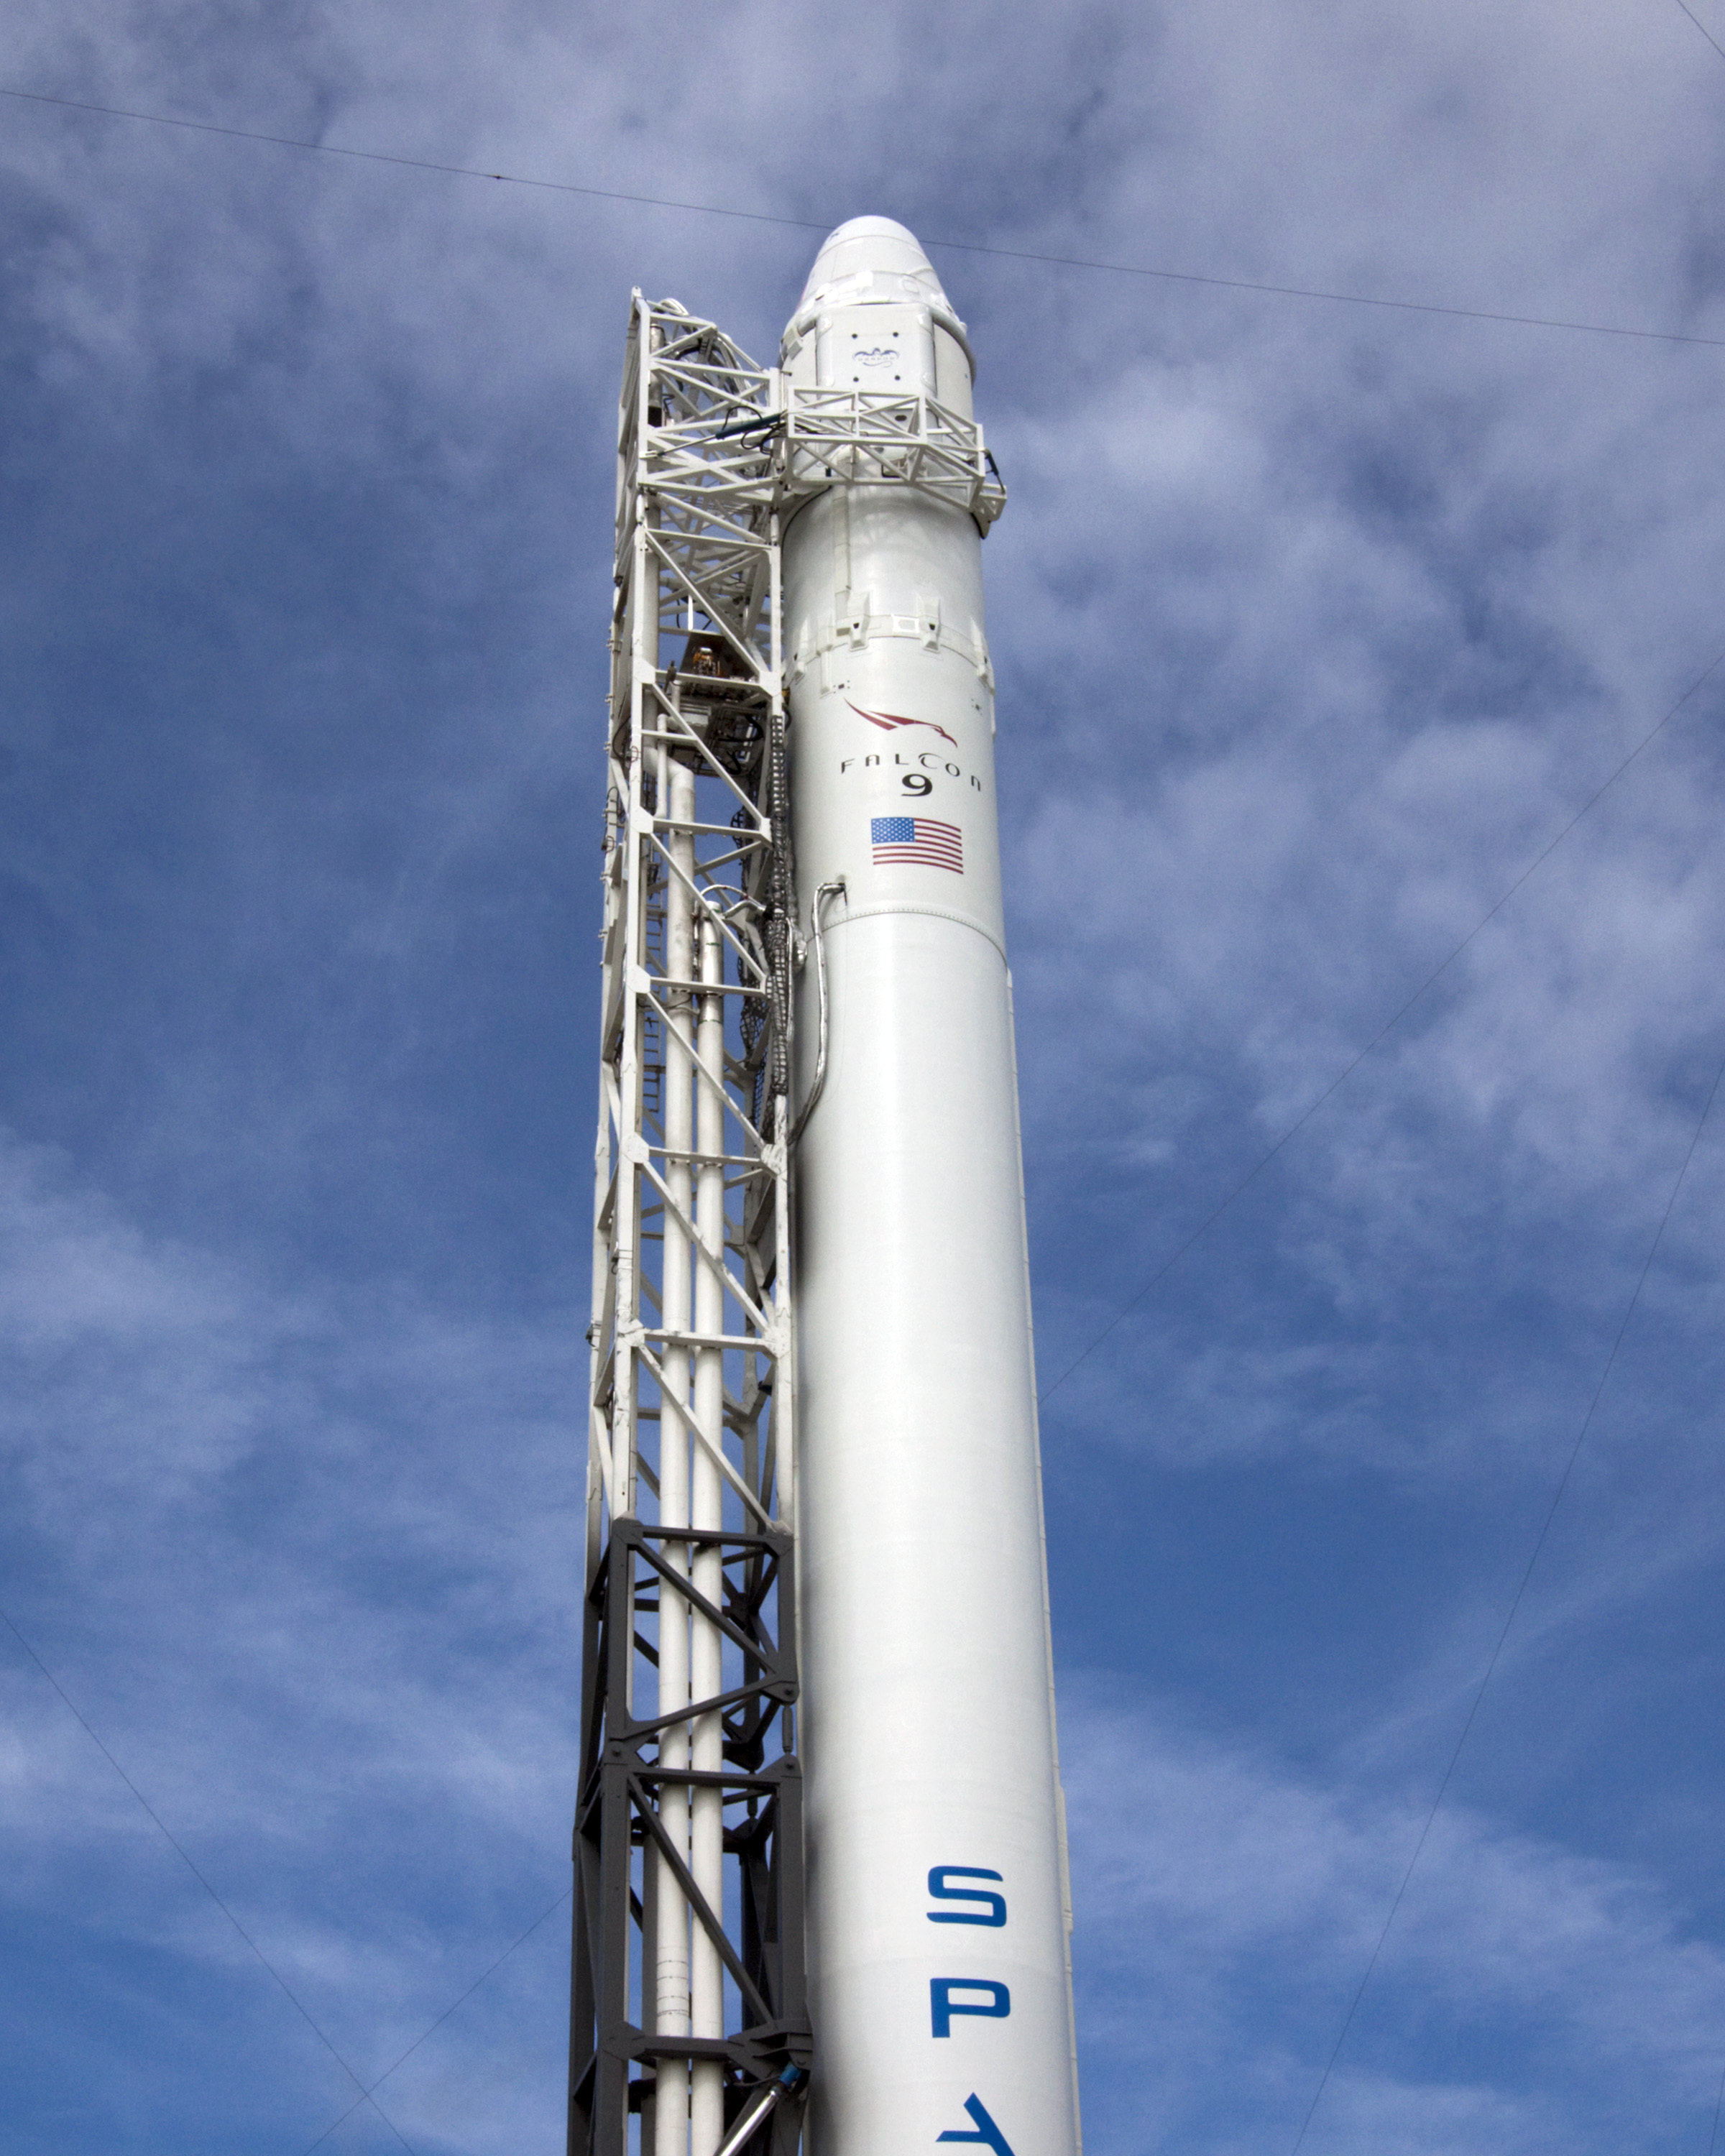 SpaceX's Falcon 9 in Vertical Position